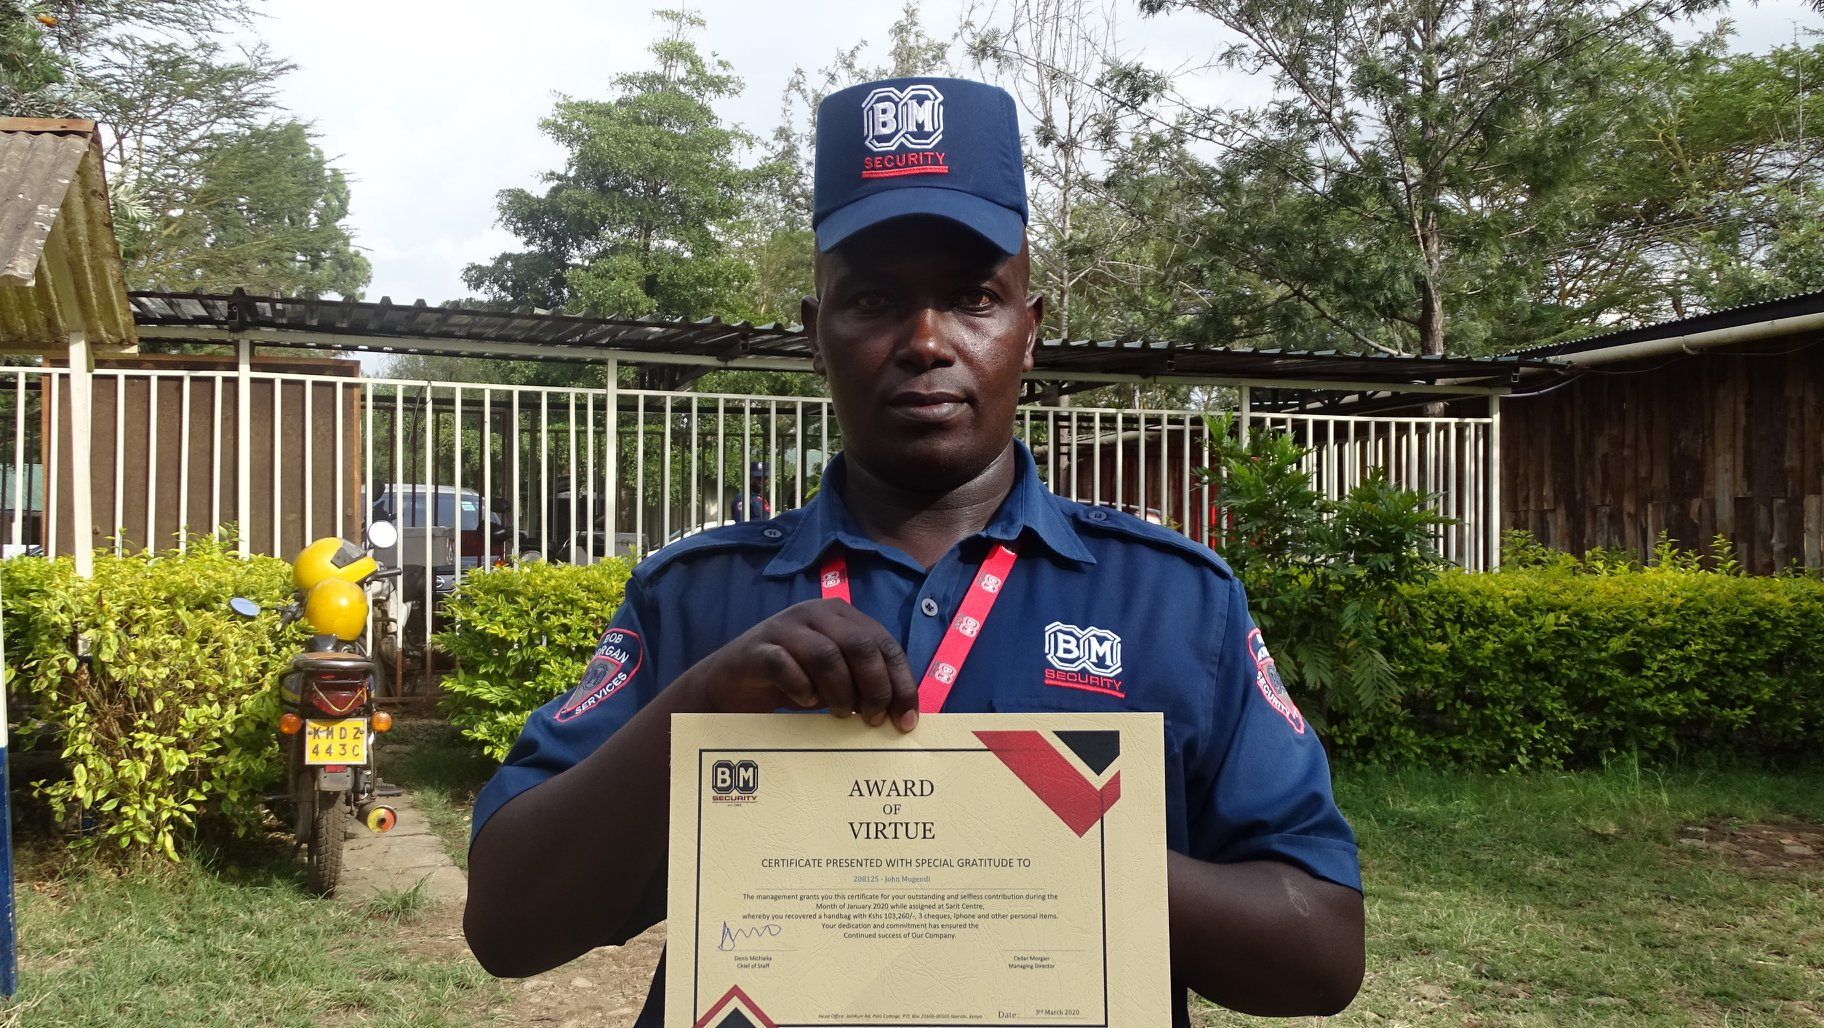 Security Guard Joseph Mugendi poses with a certificate after being awarded on March 17, 2020